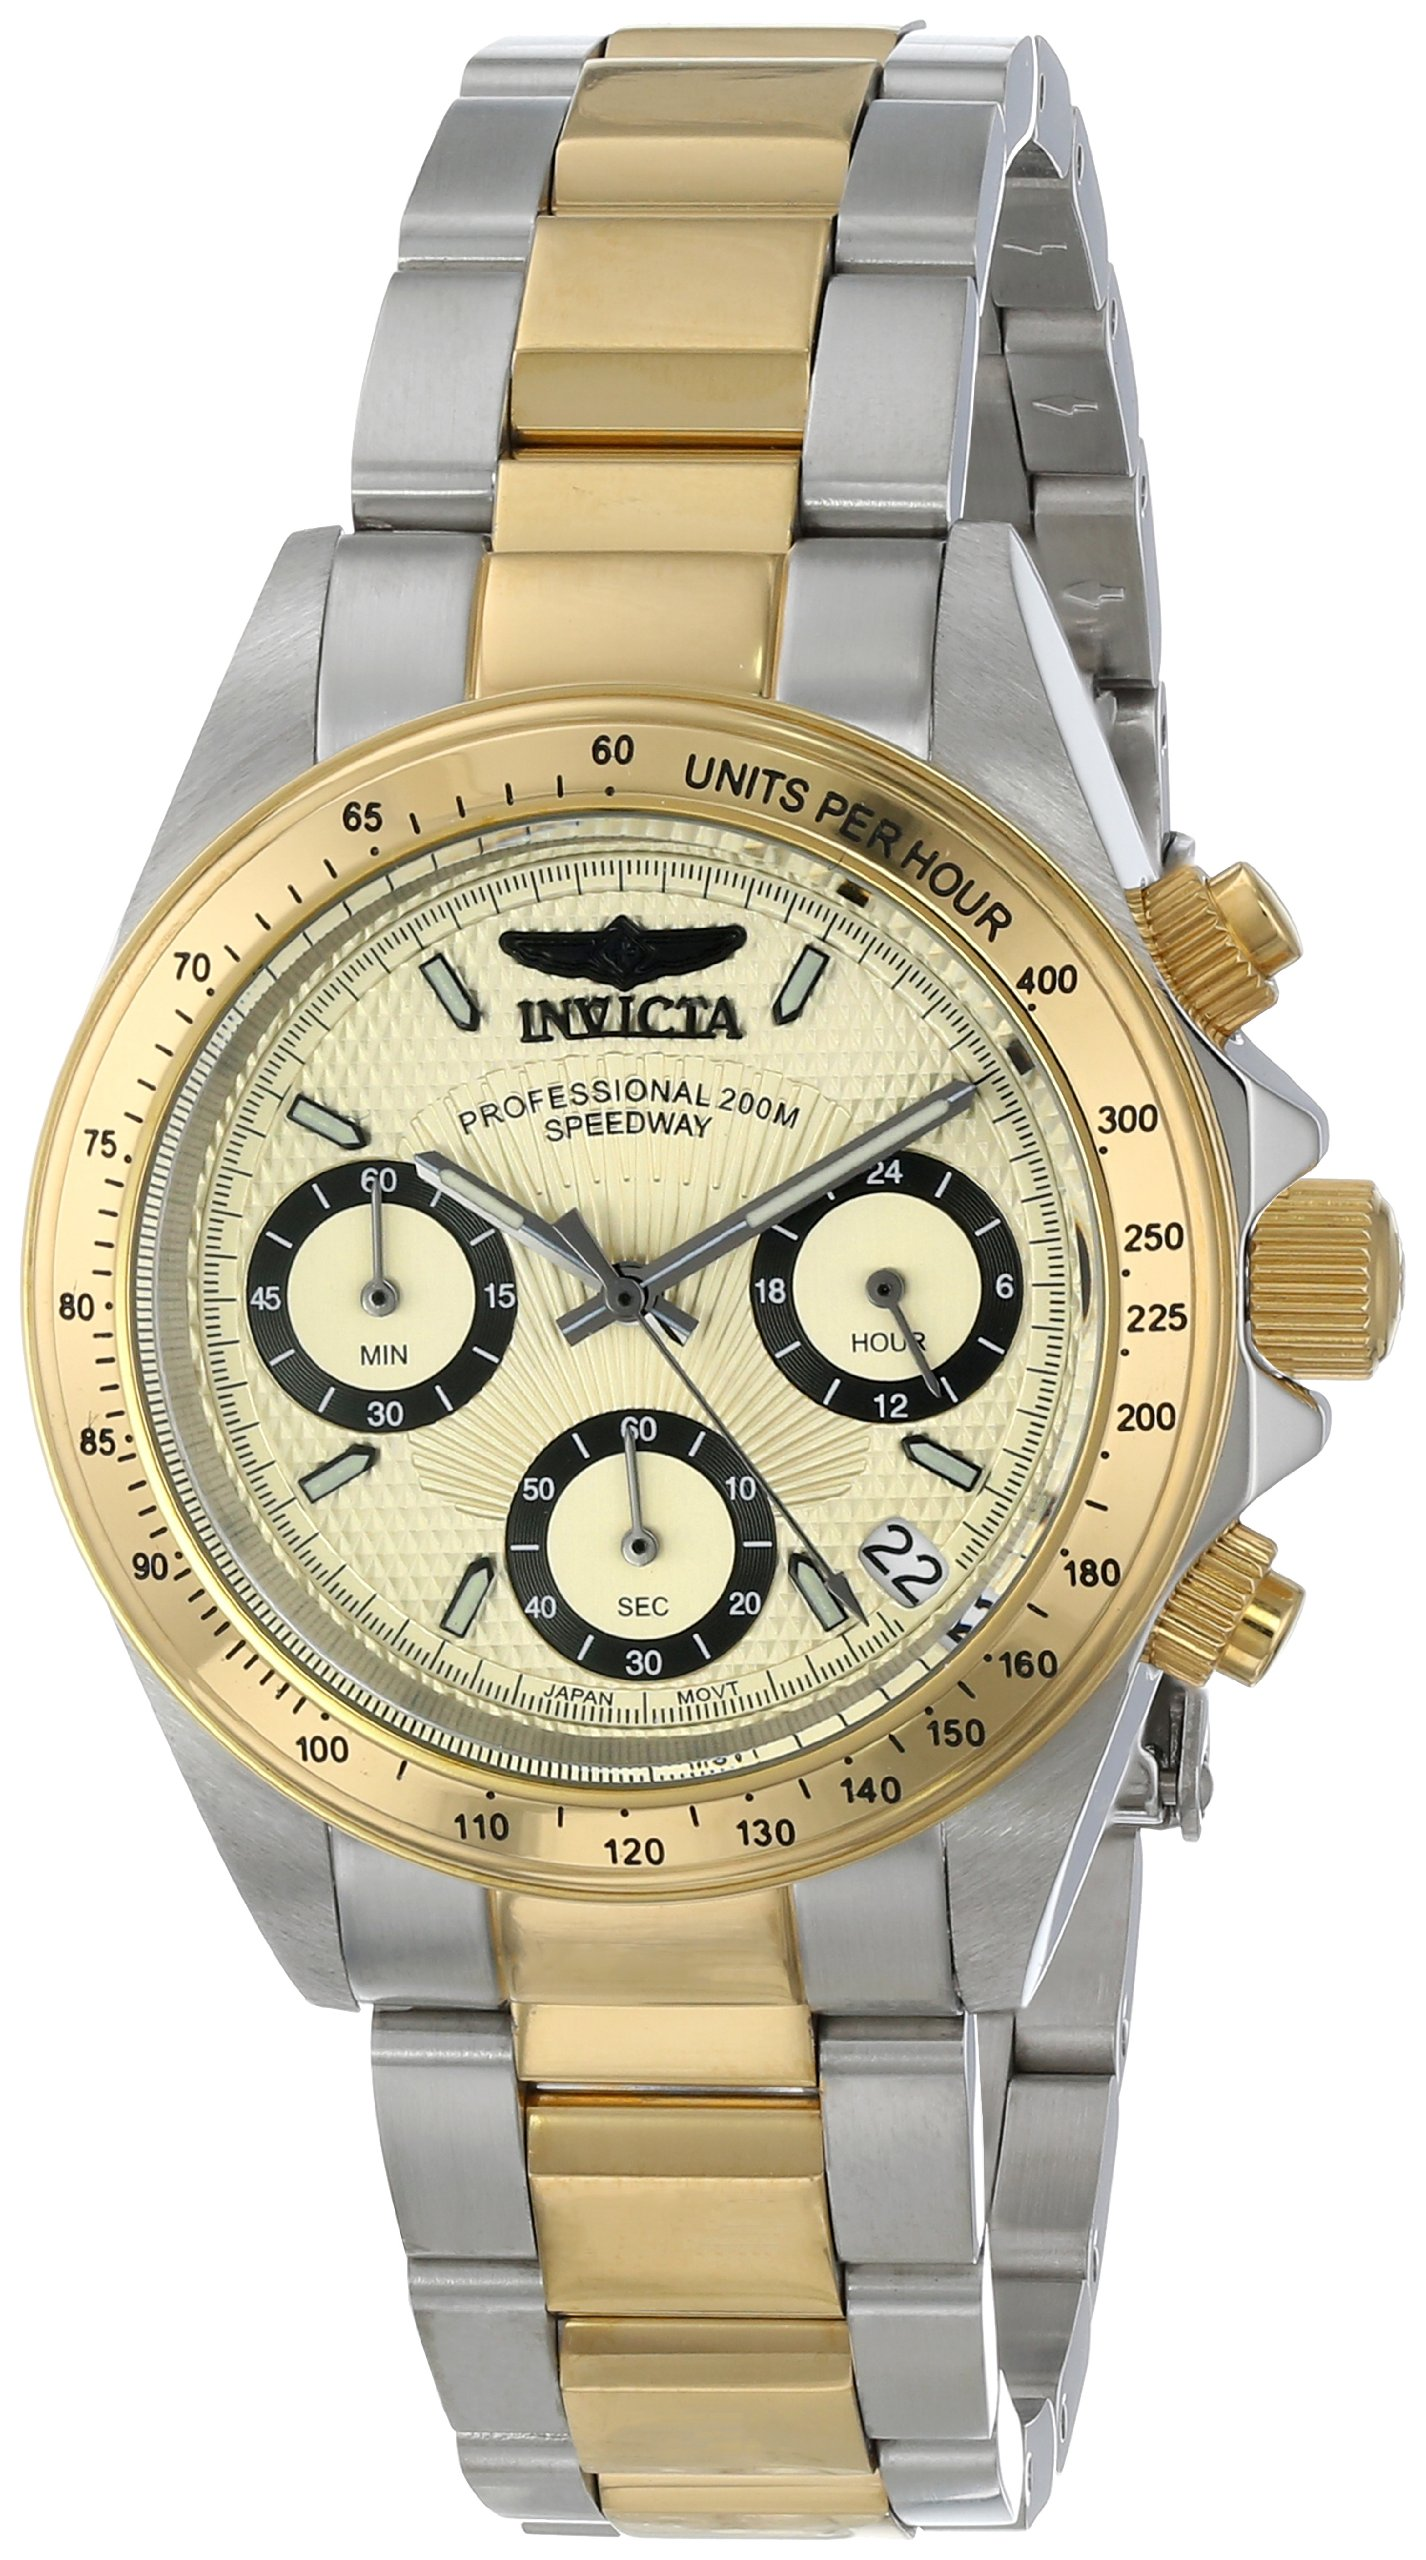 Invicta Women's 14932 Speedway Analog Display Japanese Quartz Two Tone Watch by Invicta